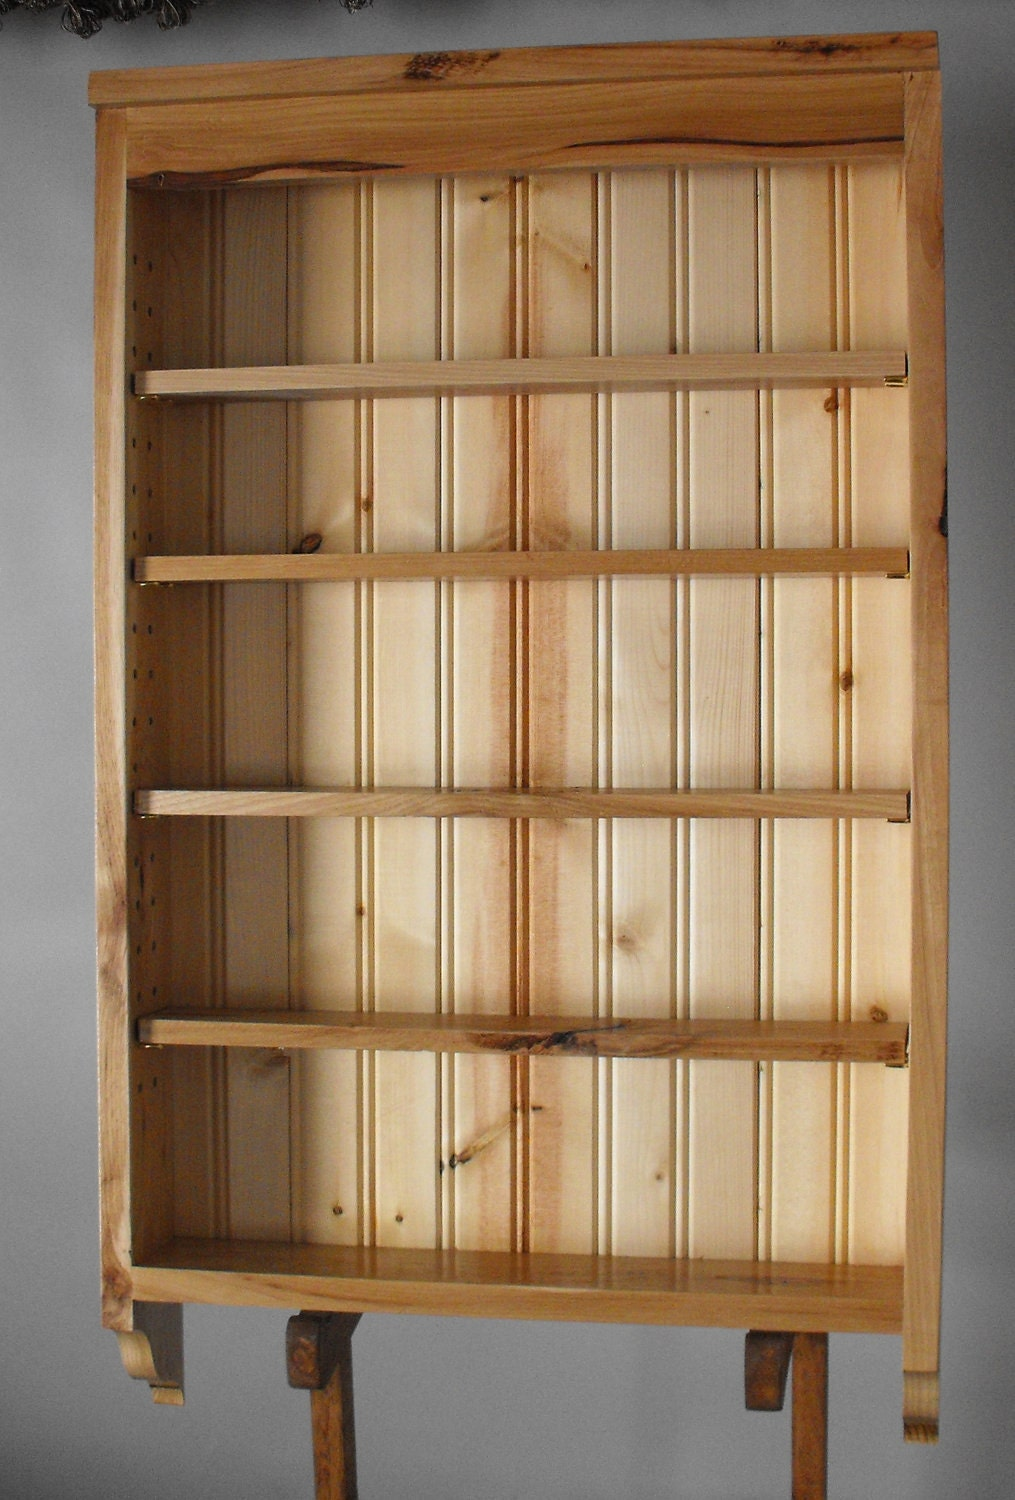 Display Cabinet Rustic Hickory with Adjustable shelves